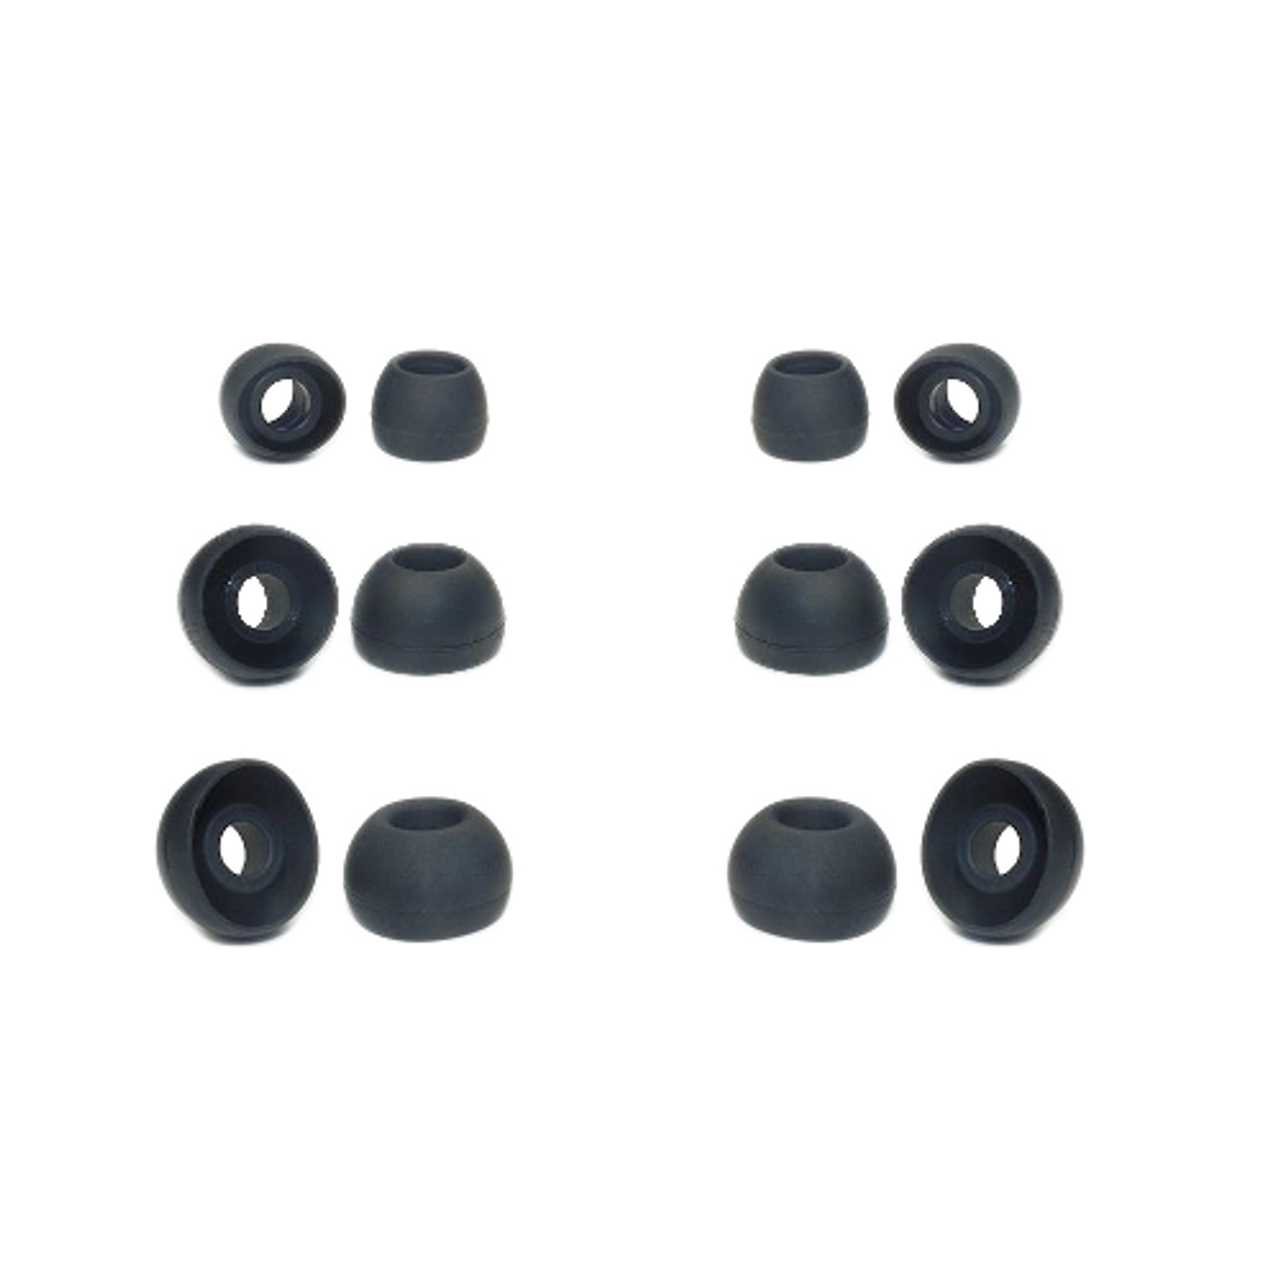 replacement earbud tips for skullcandy ear gels